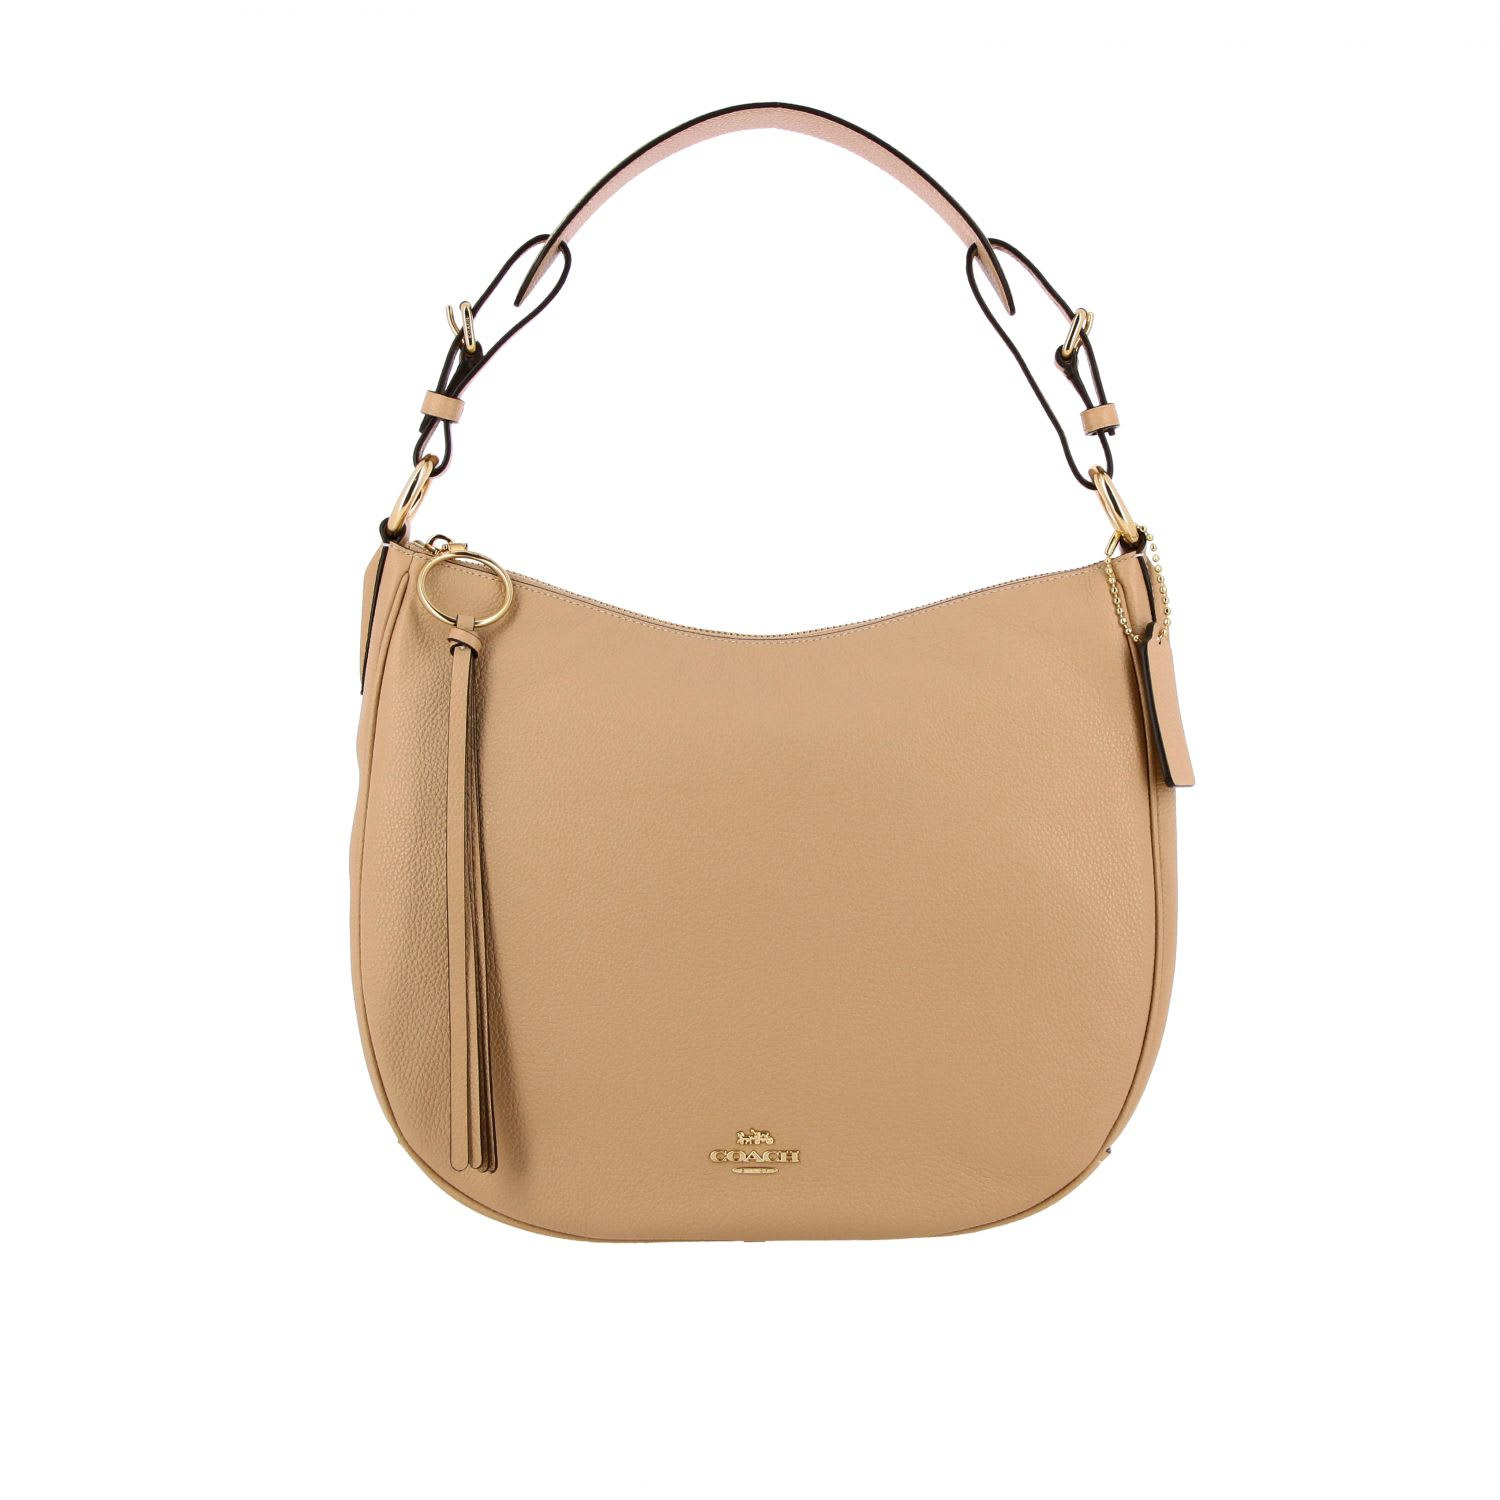 Coach SUTTON HOBO BAG IN TEXTURED LEATHER